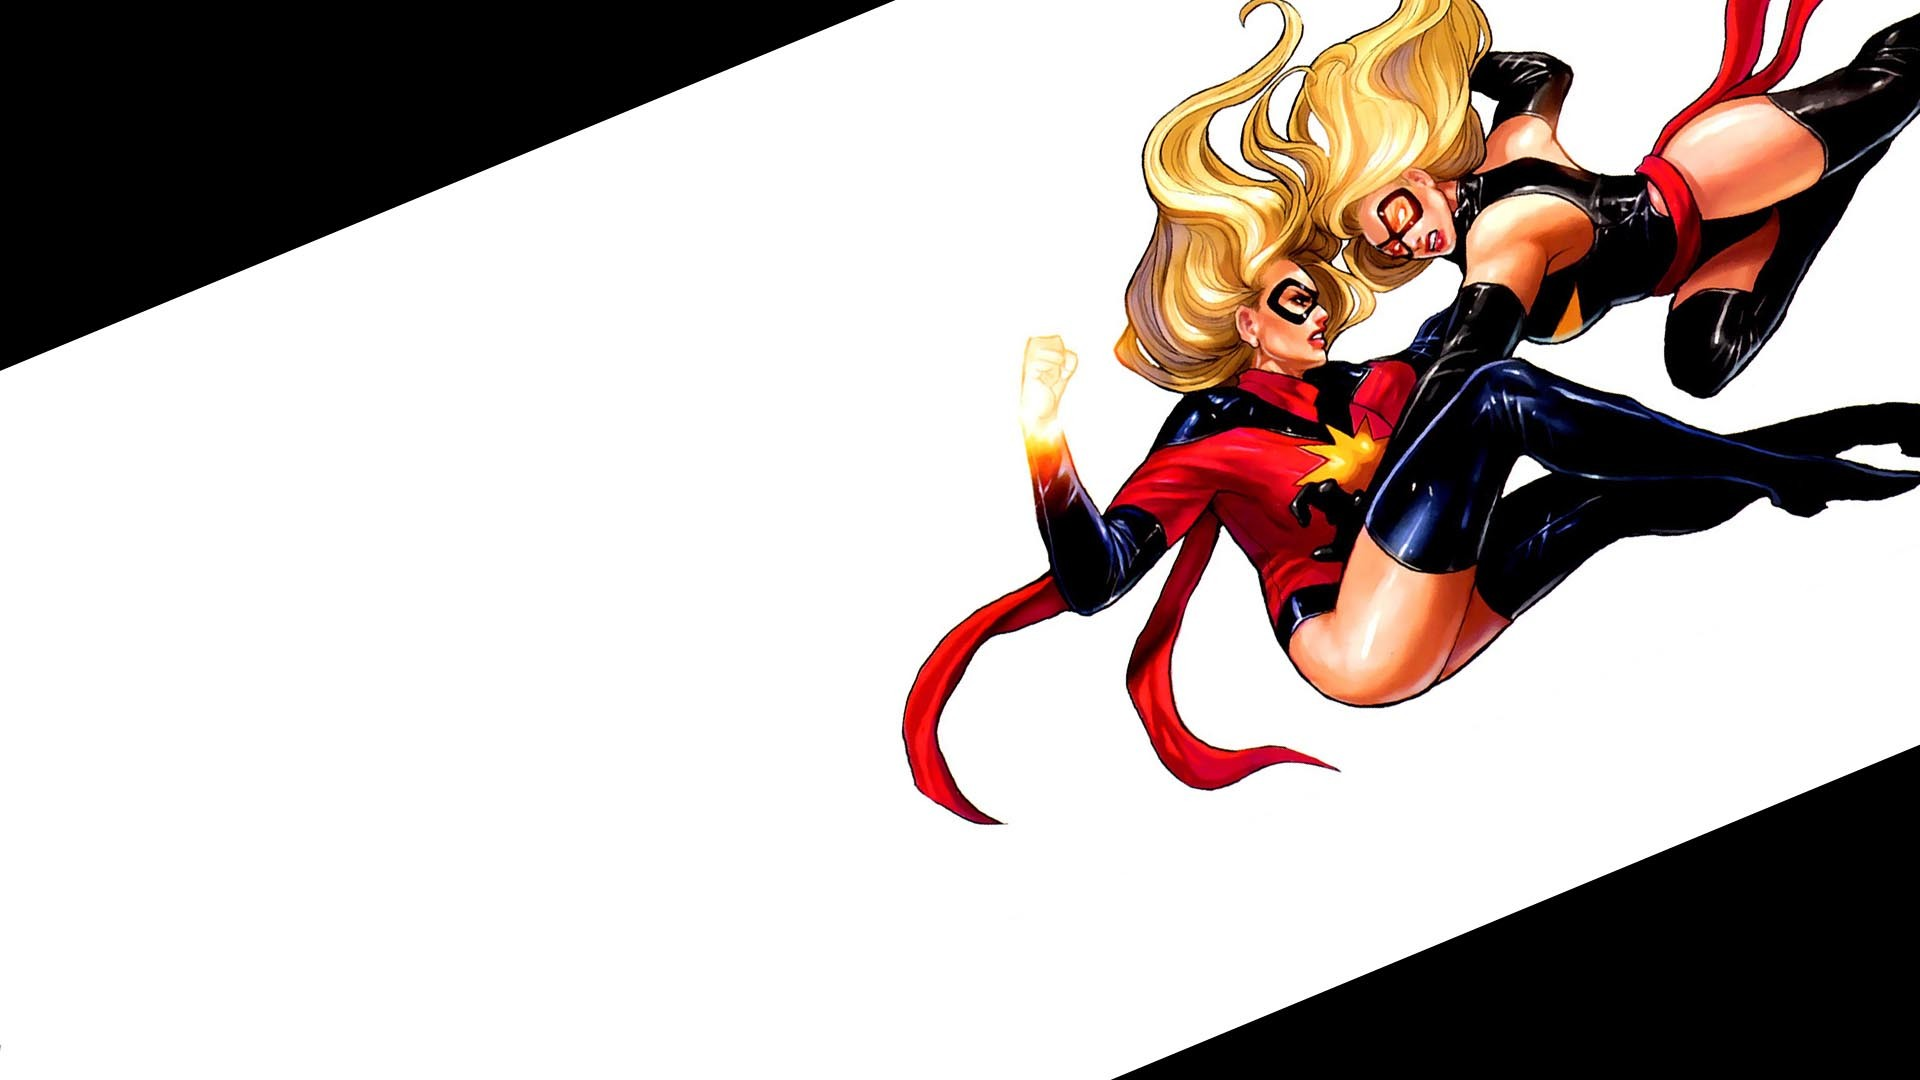 71 Ms Marvel HD Wallpapers   Backgrounds – Wallpaper Abyss